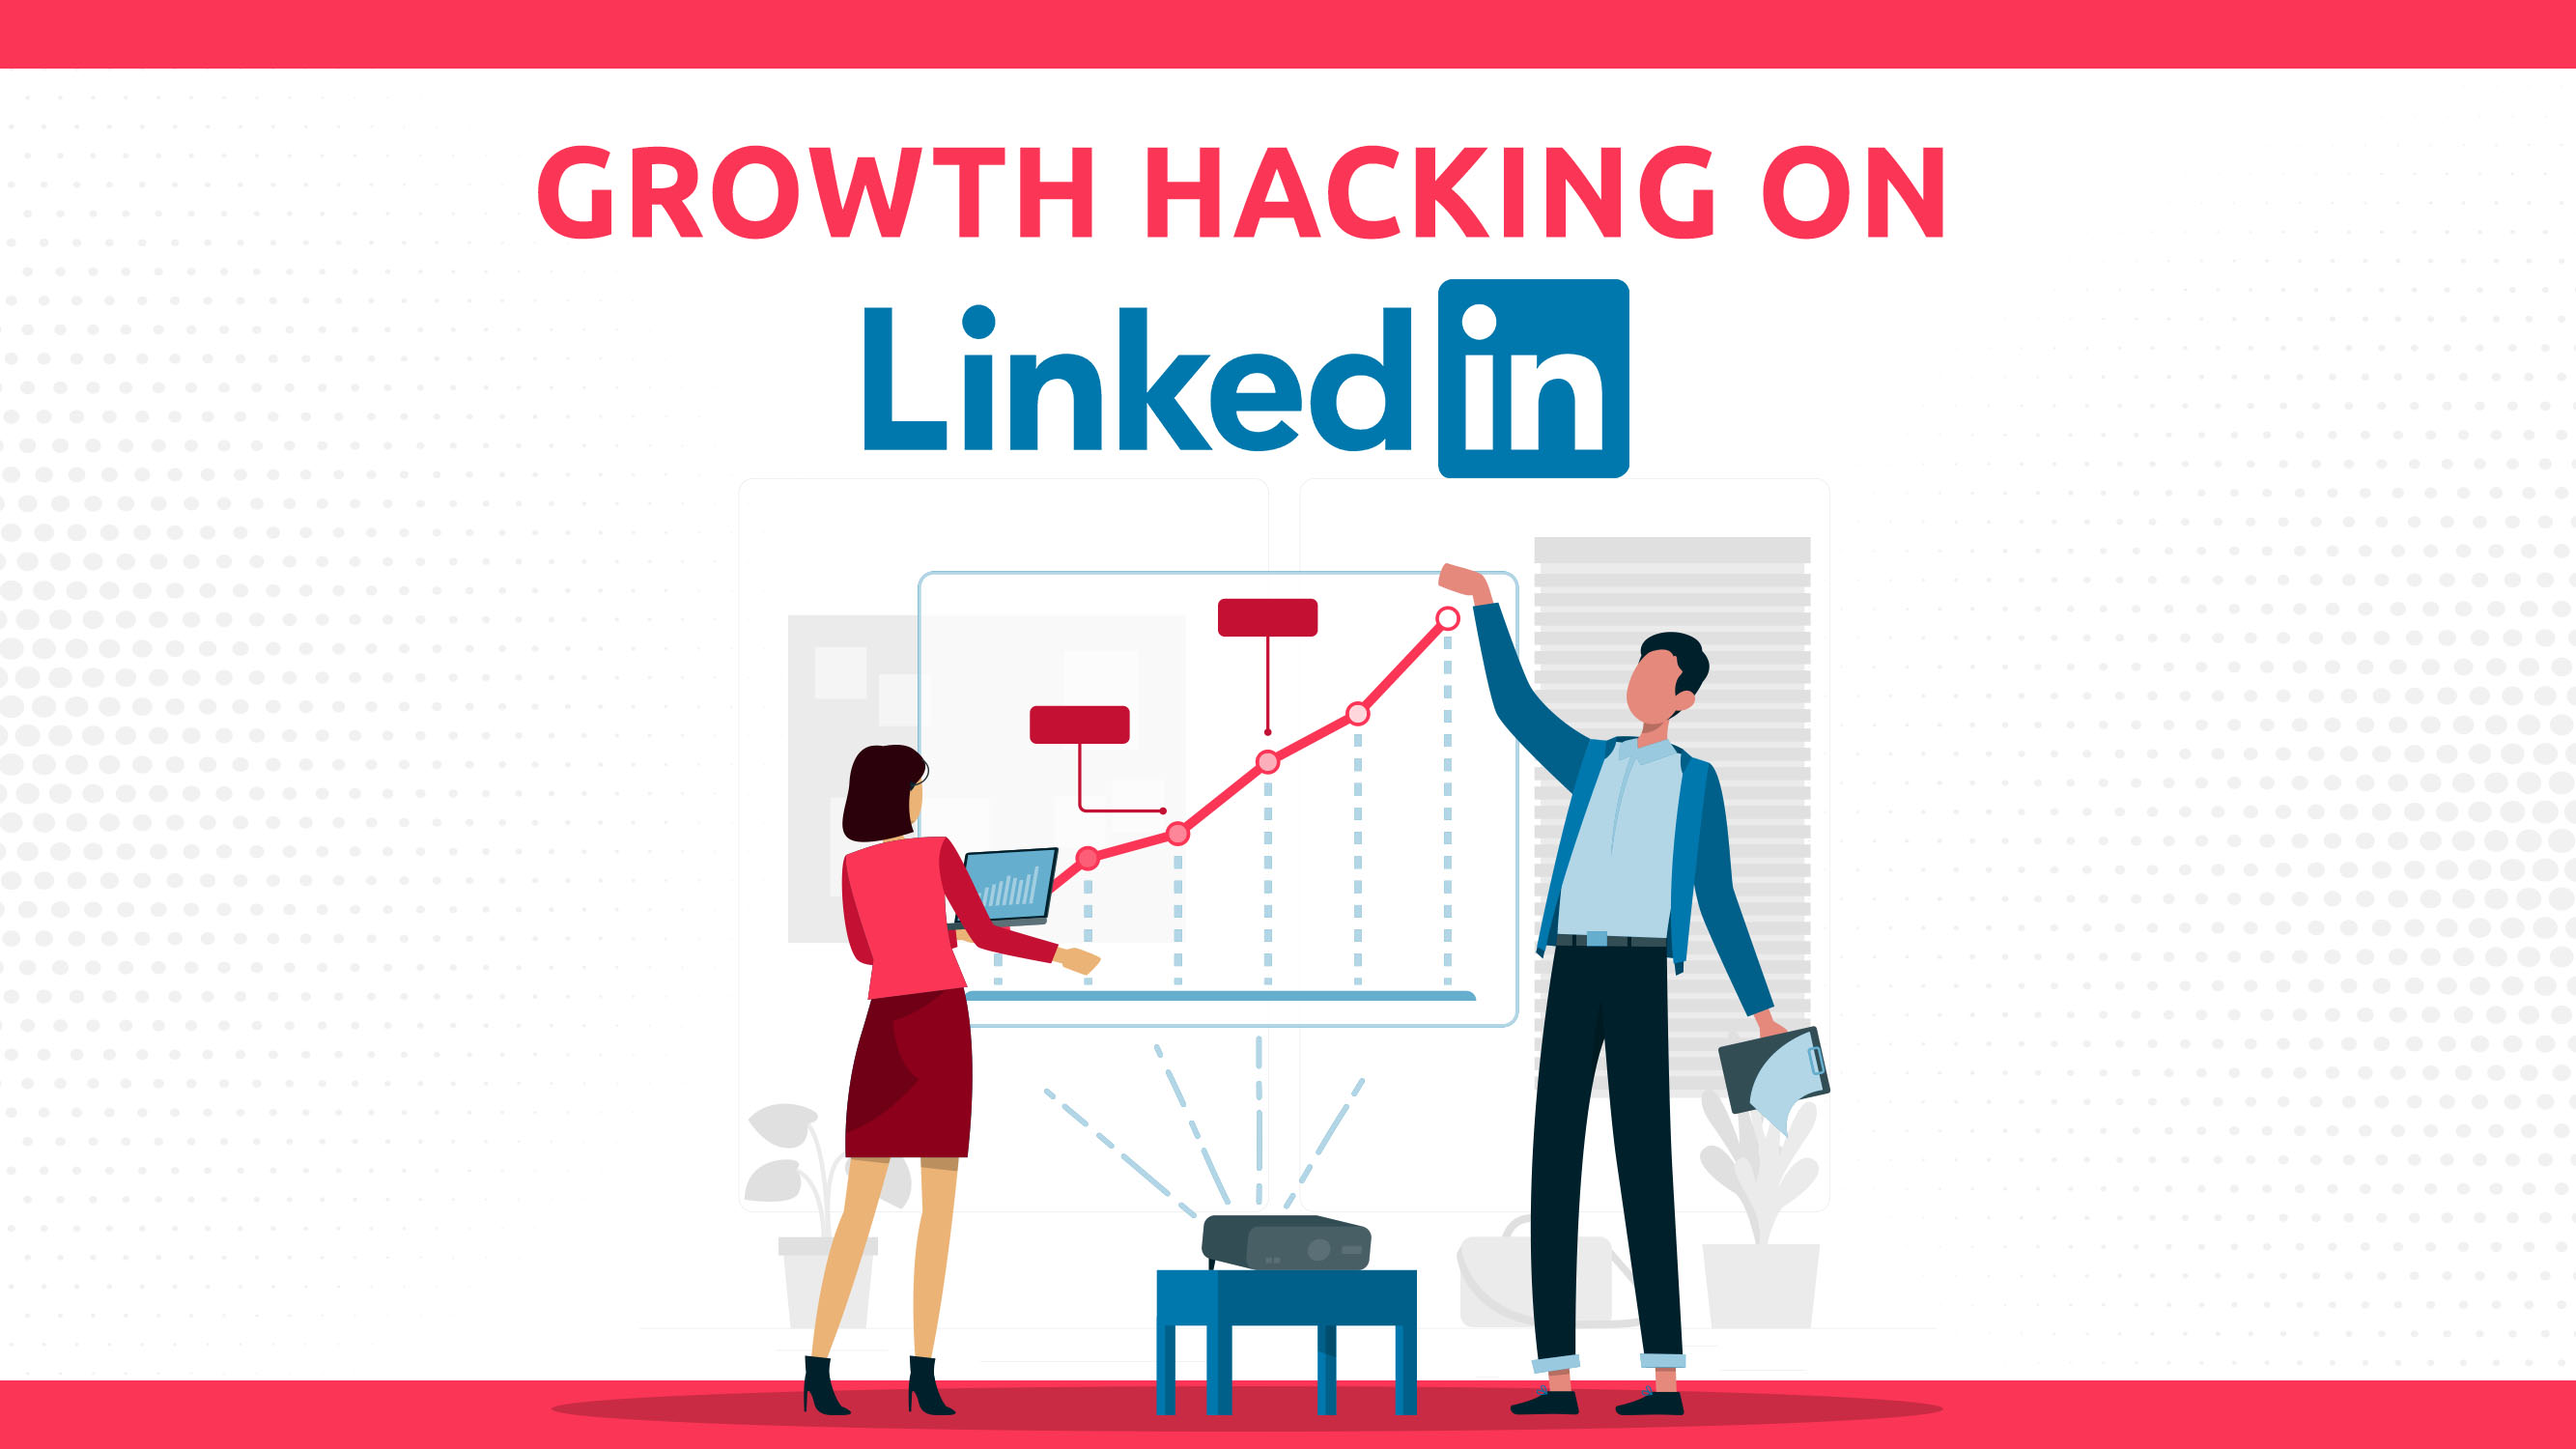 How To Growth Hack On LinkedIn